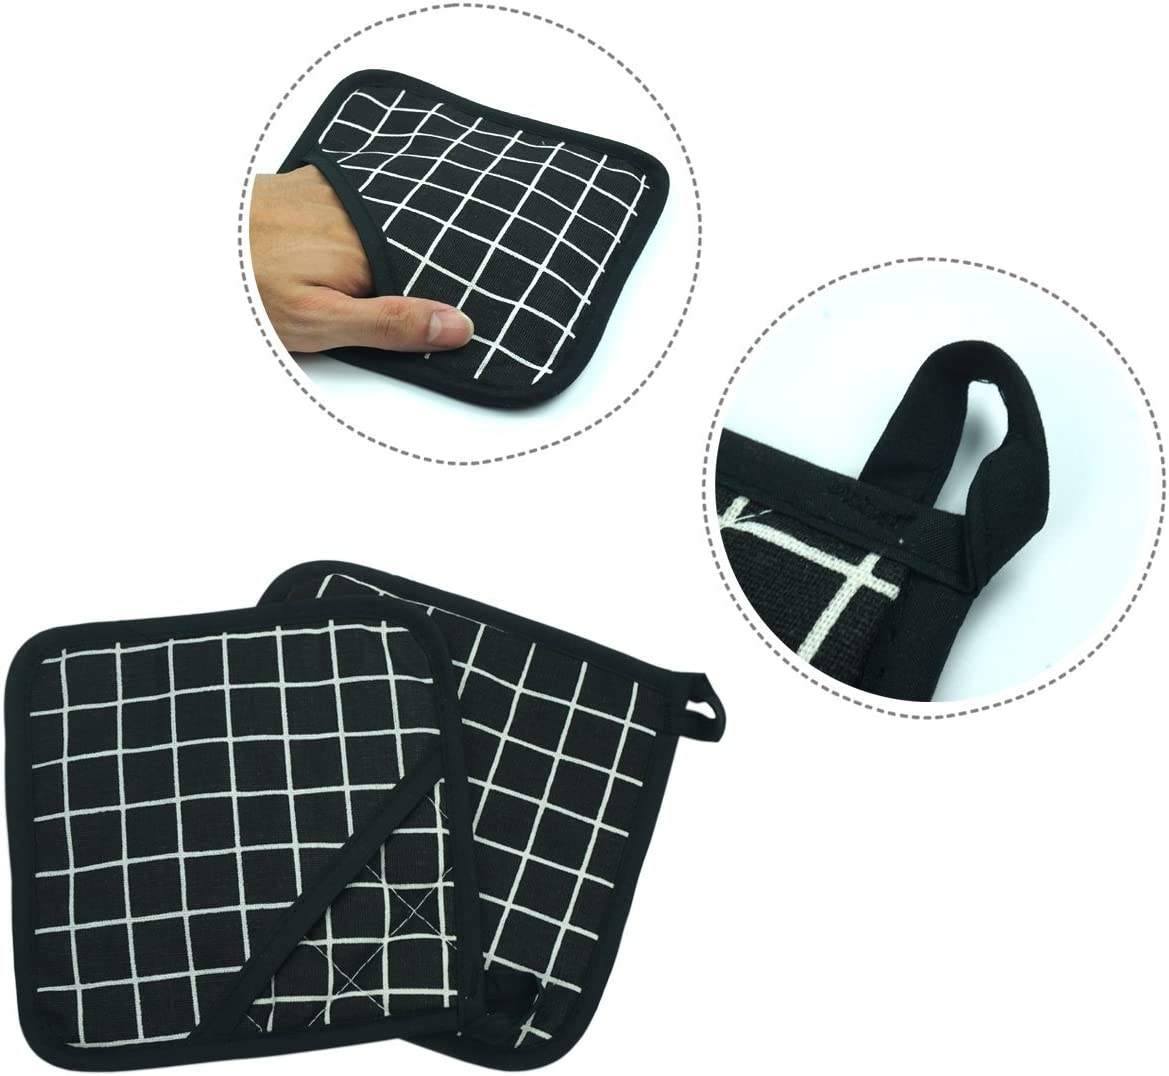 Barbecue Potholder 1 Pair Dualeco Heat Resistant Silicone Oven Gloves Black Non-Slip Cotton Quilted Kitchen Gloves Grilling Mitts for Cooking Baking